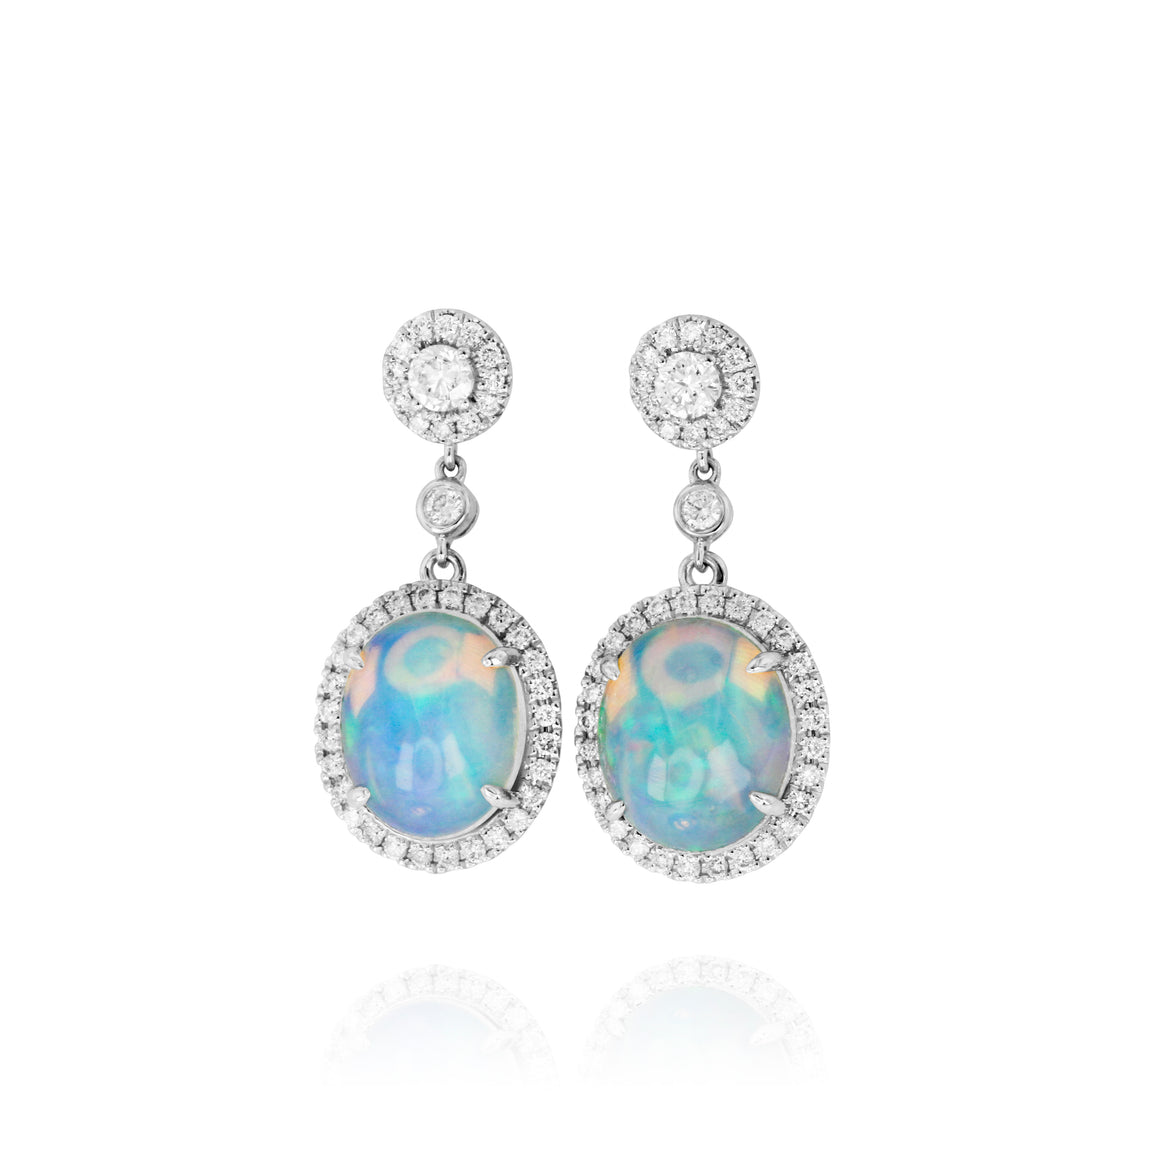 Yael 18k White Gold Opal and Diamond Earrings